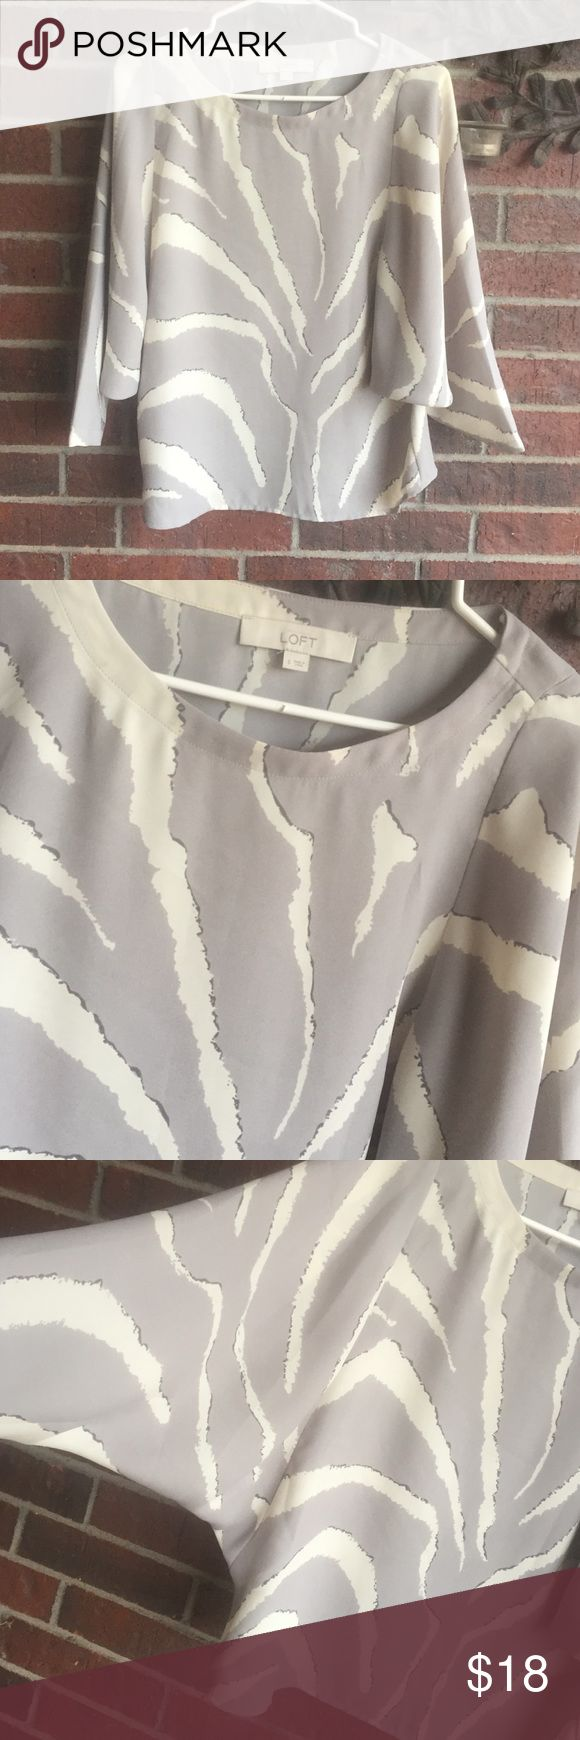 Loft grey zebra print size S batwing sleeved top Excellent condition. Size Small with measurements of 20 in from underarm to underarm and 5 in from underarm going down the side length.  (350134T) LOFT Tops Blouses